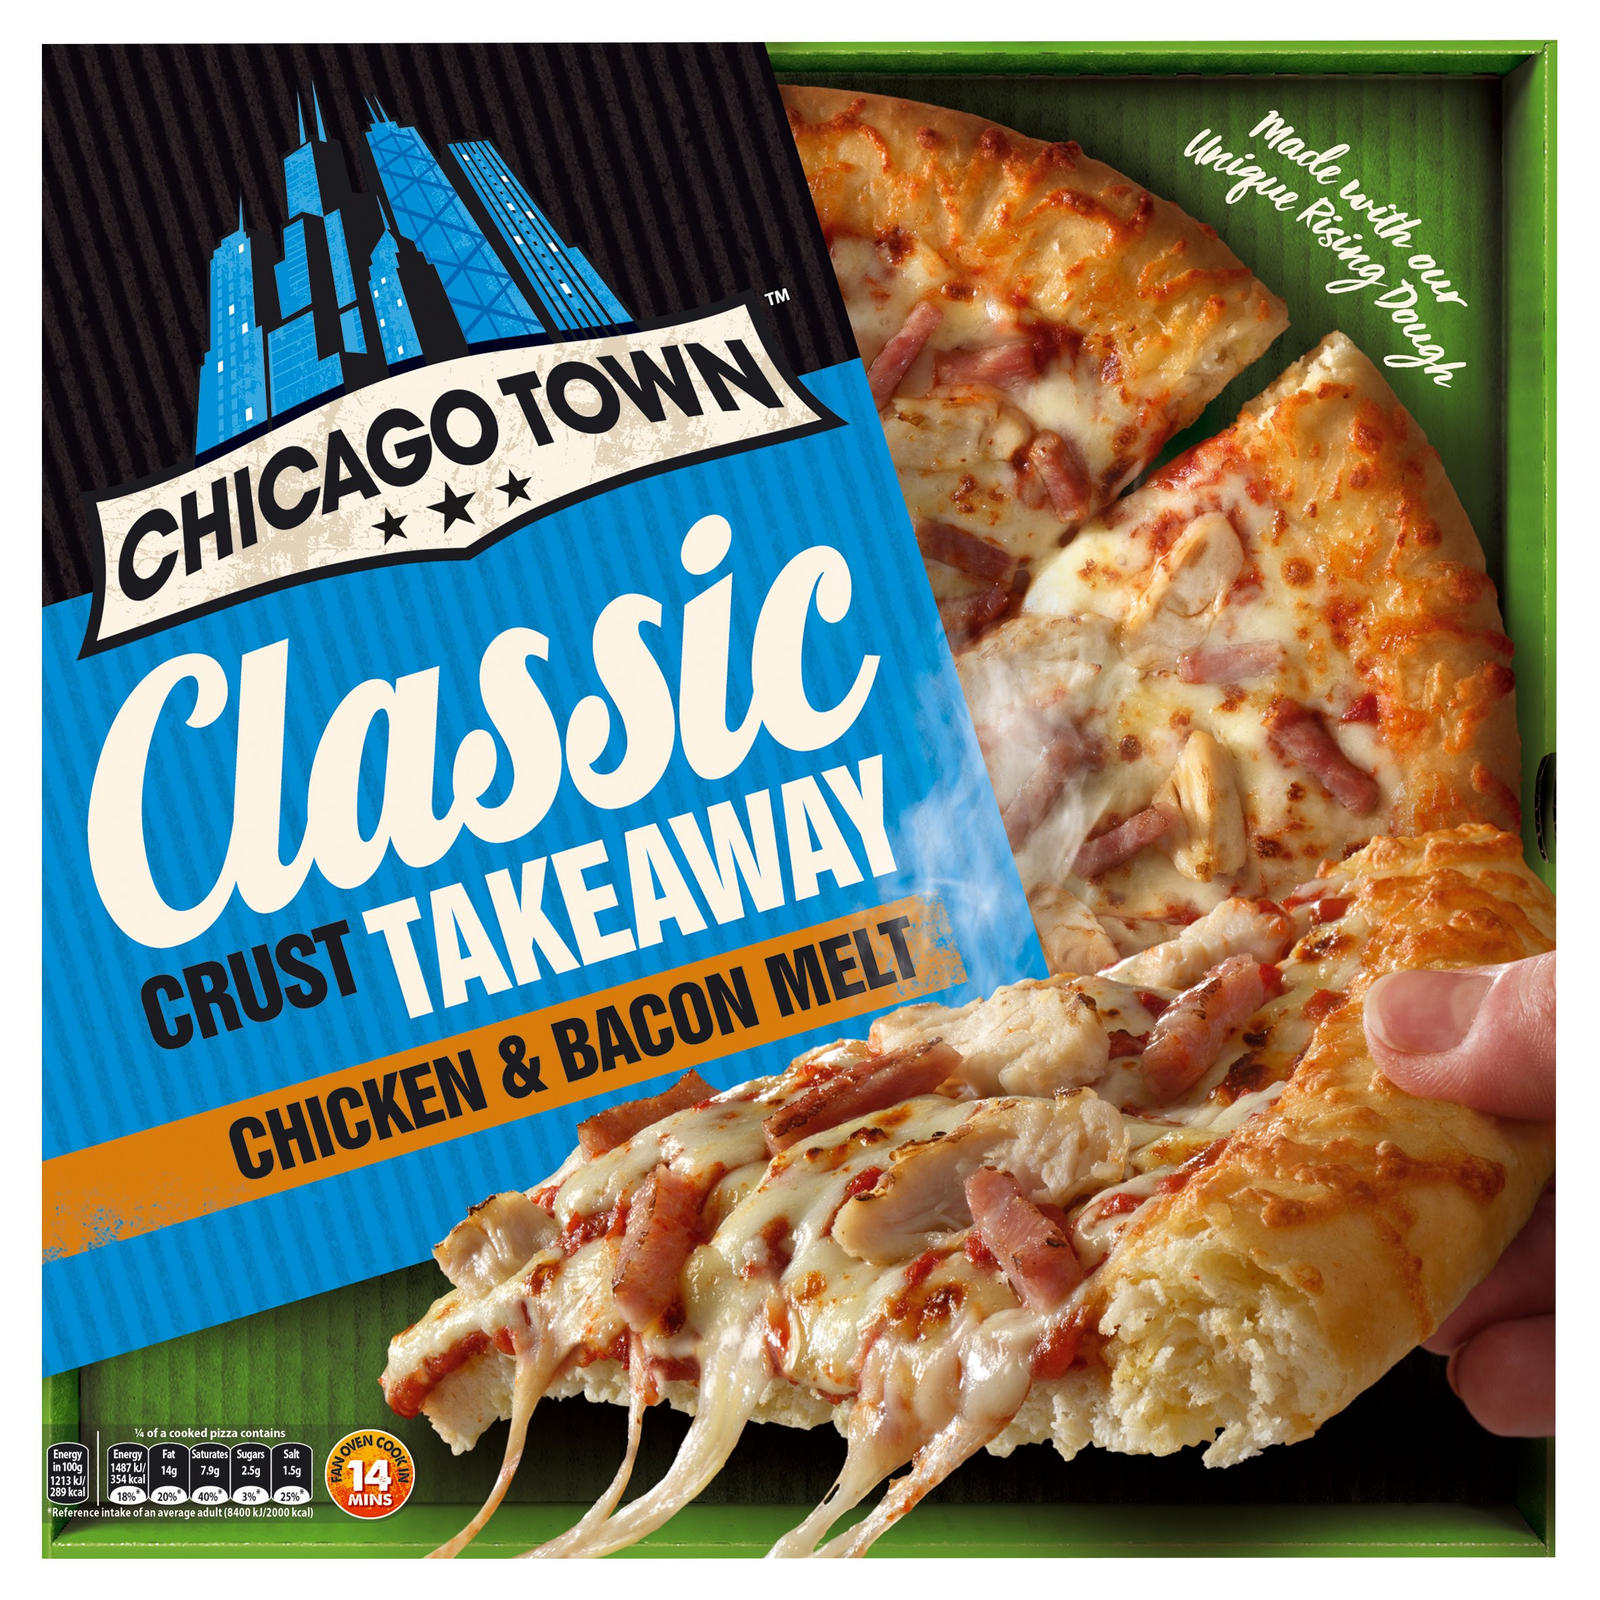 Chicago Town Takeaway Large Classic Crust Chicken Bacon